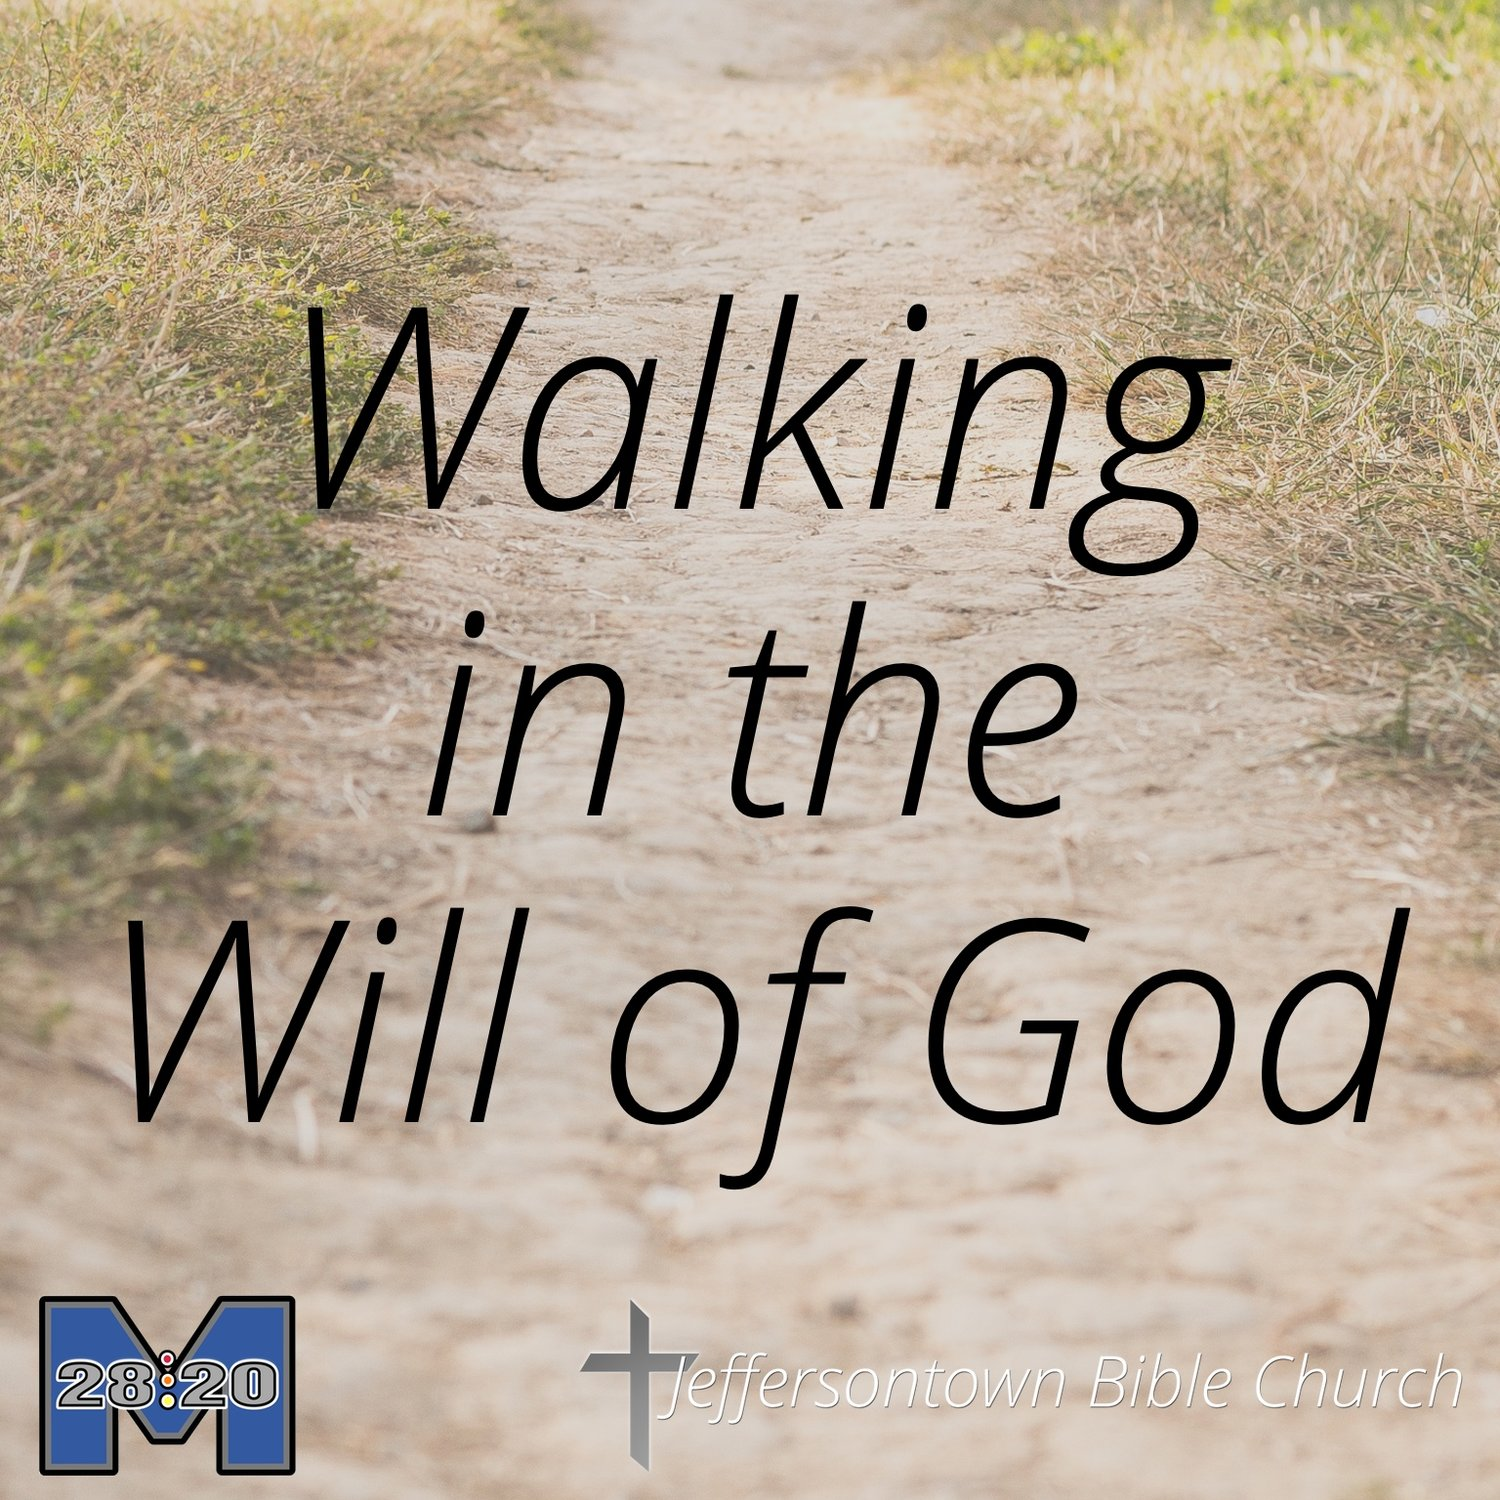 M28:20 - Walking to Please God - 1 Thessalonians 4:1